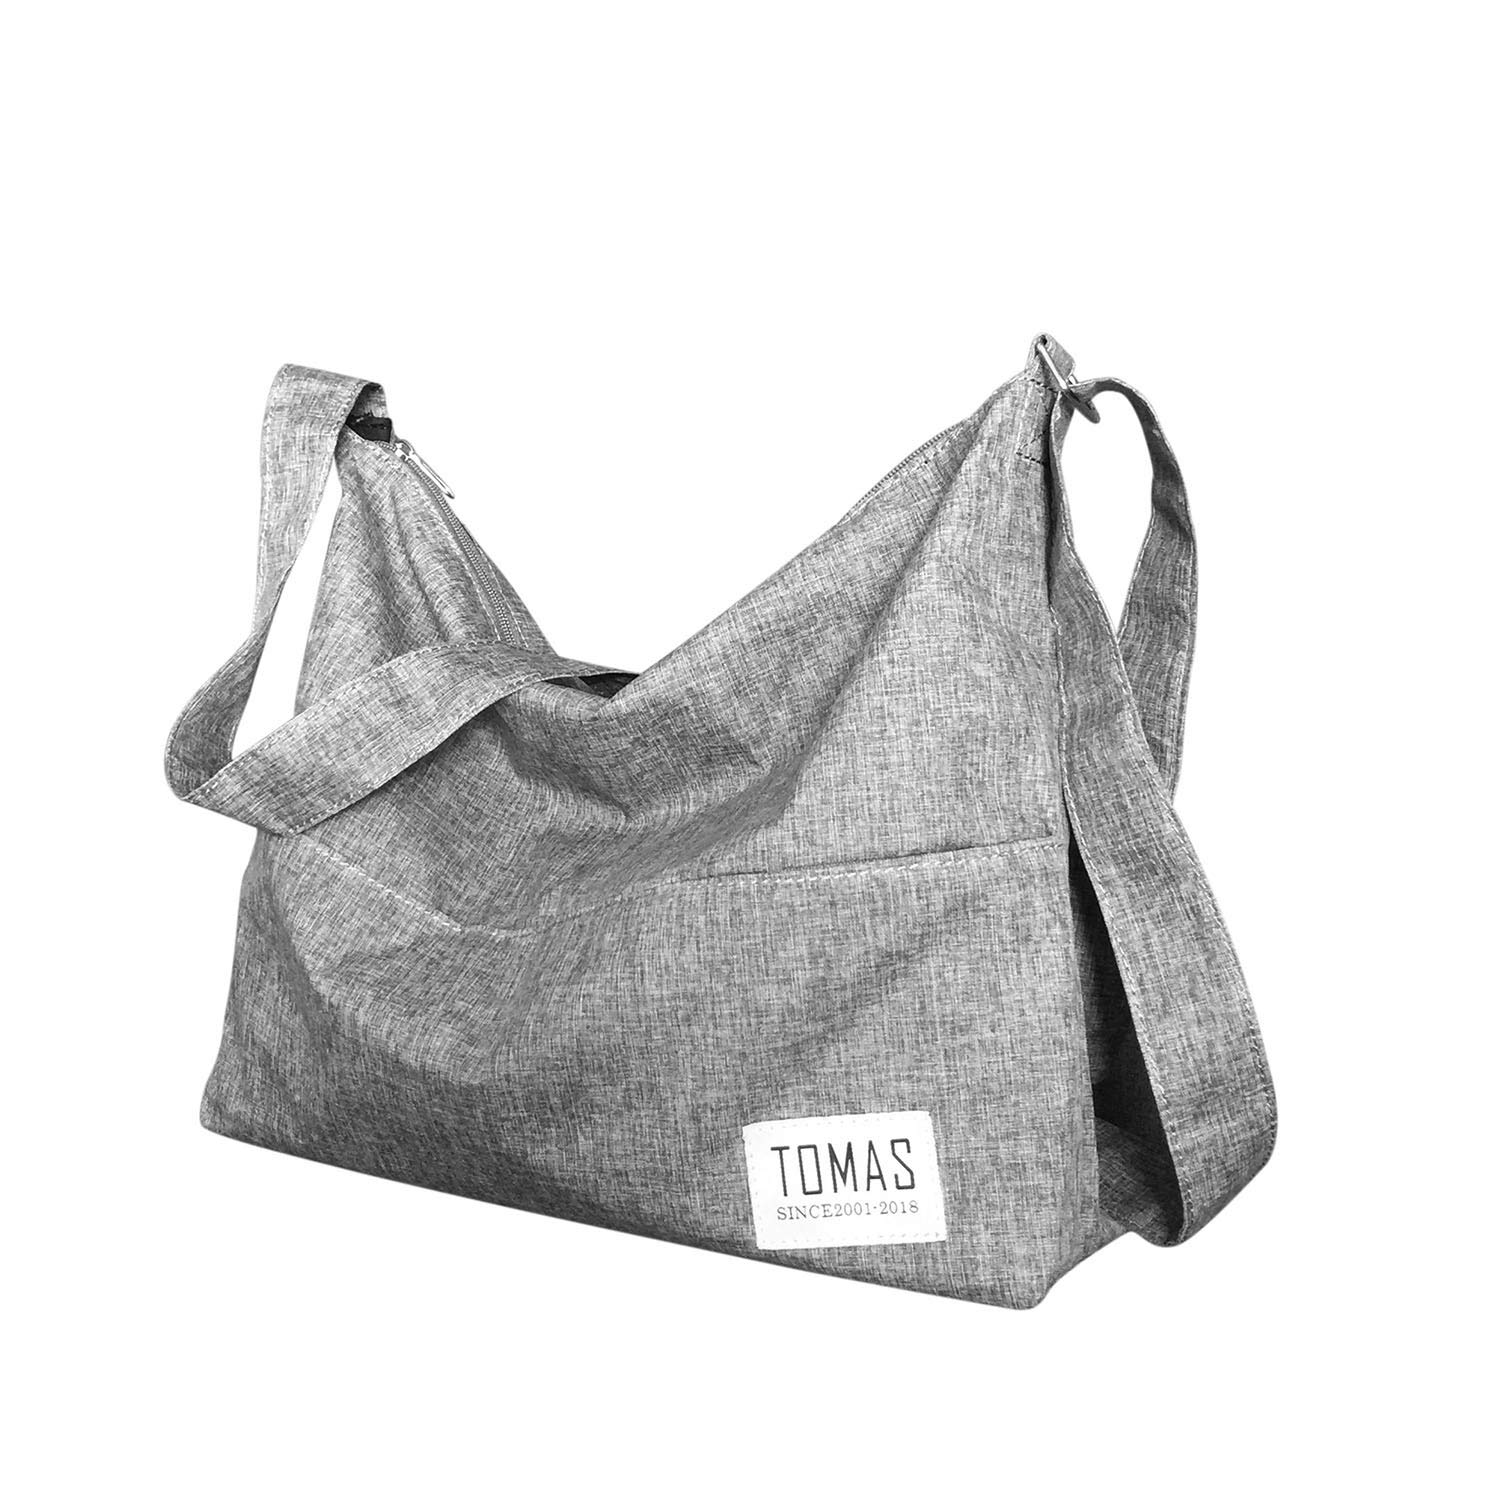 TOMAS Women Casual, Simple, Fashion, Resistant To Dirty, Lightweight,Durable Canvas Hobo Bag, Single Shoulder Bag Totes Bag Crossbody Bag by TOMAS (Image #2)